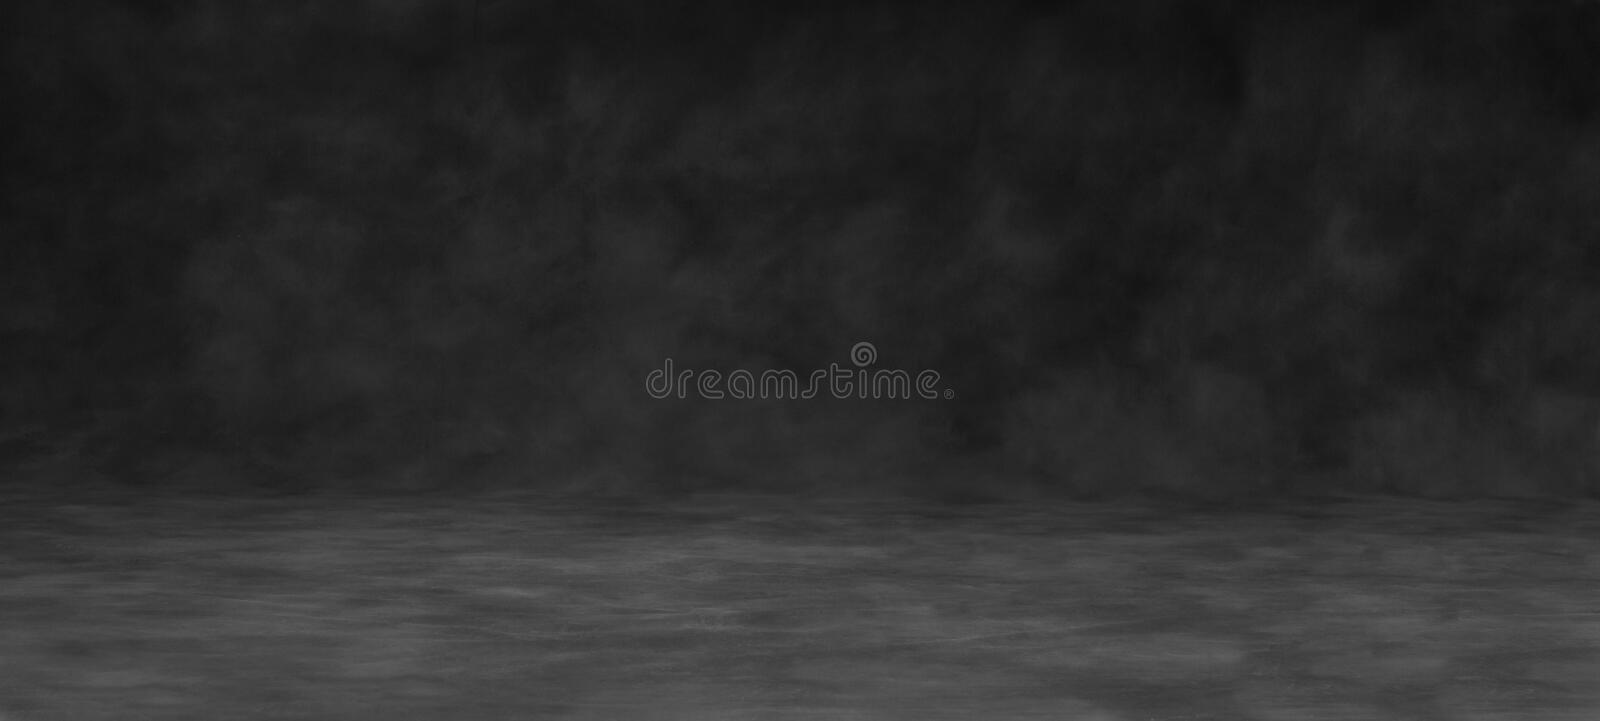 Varredura do fundo de Grey Canvas imagem de stock royalty free